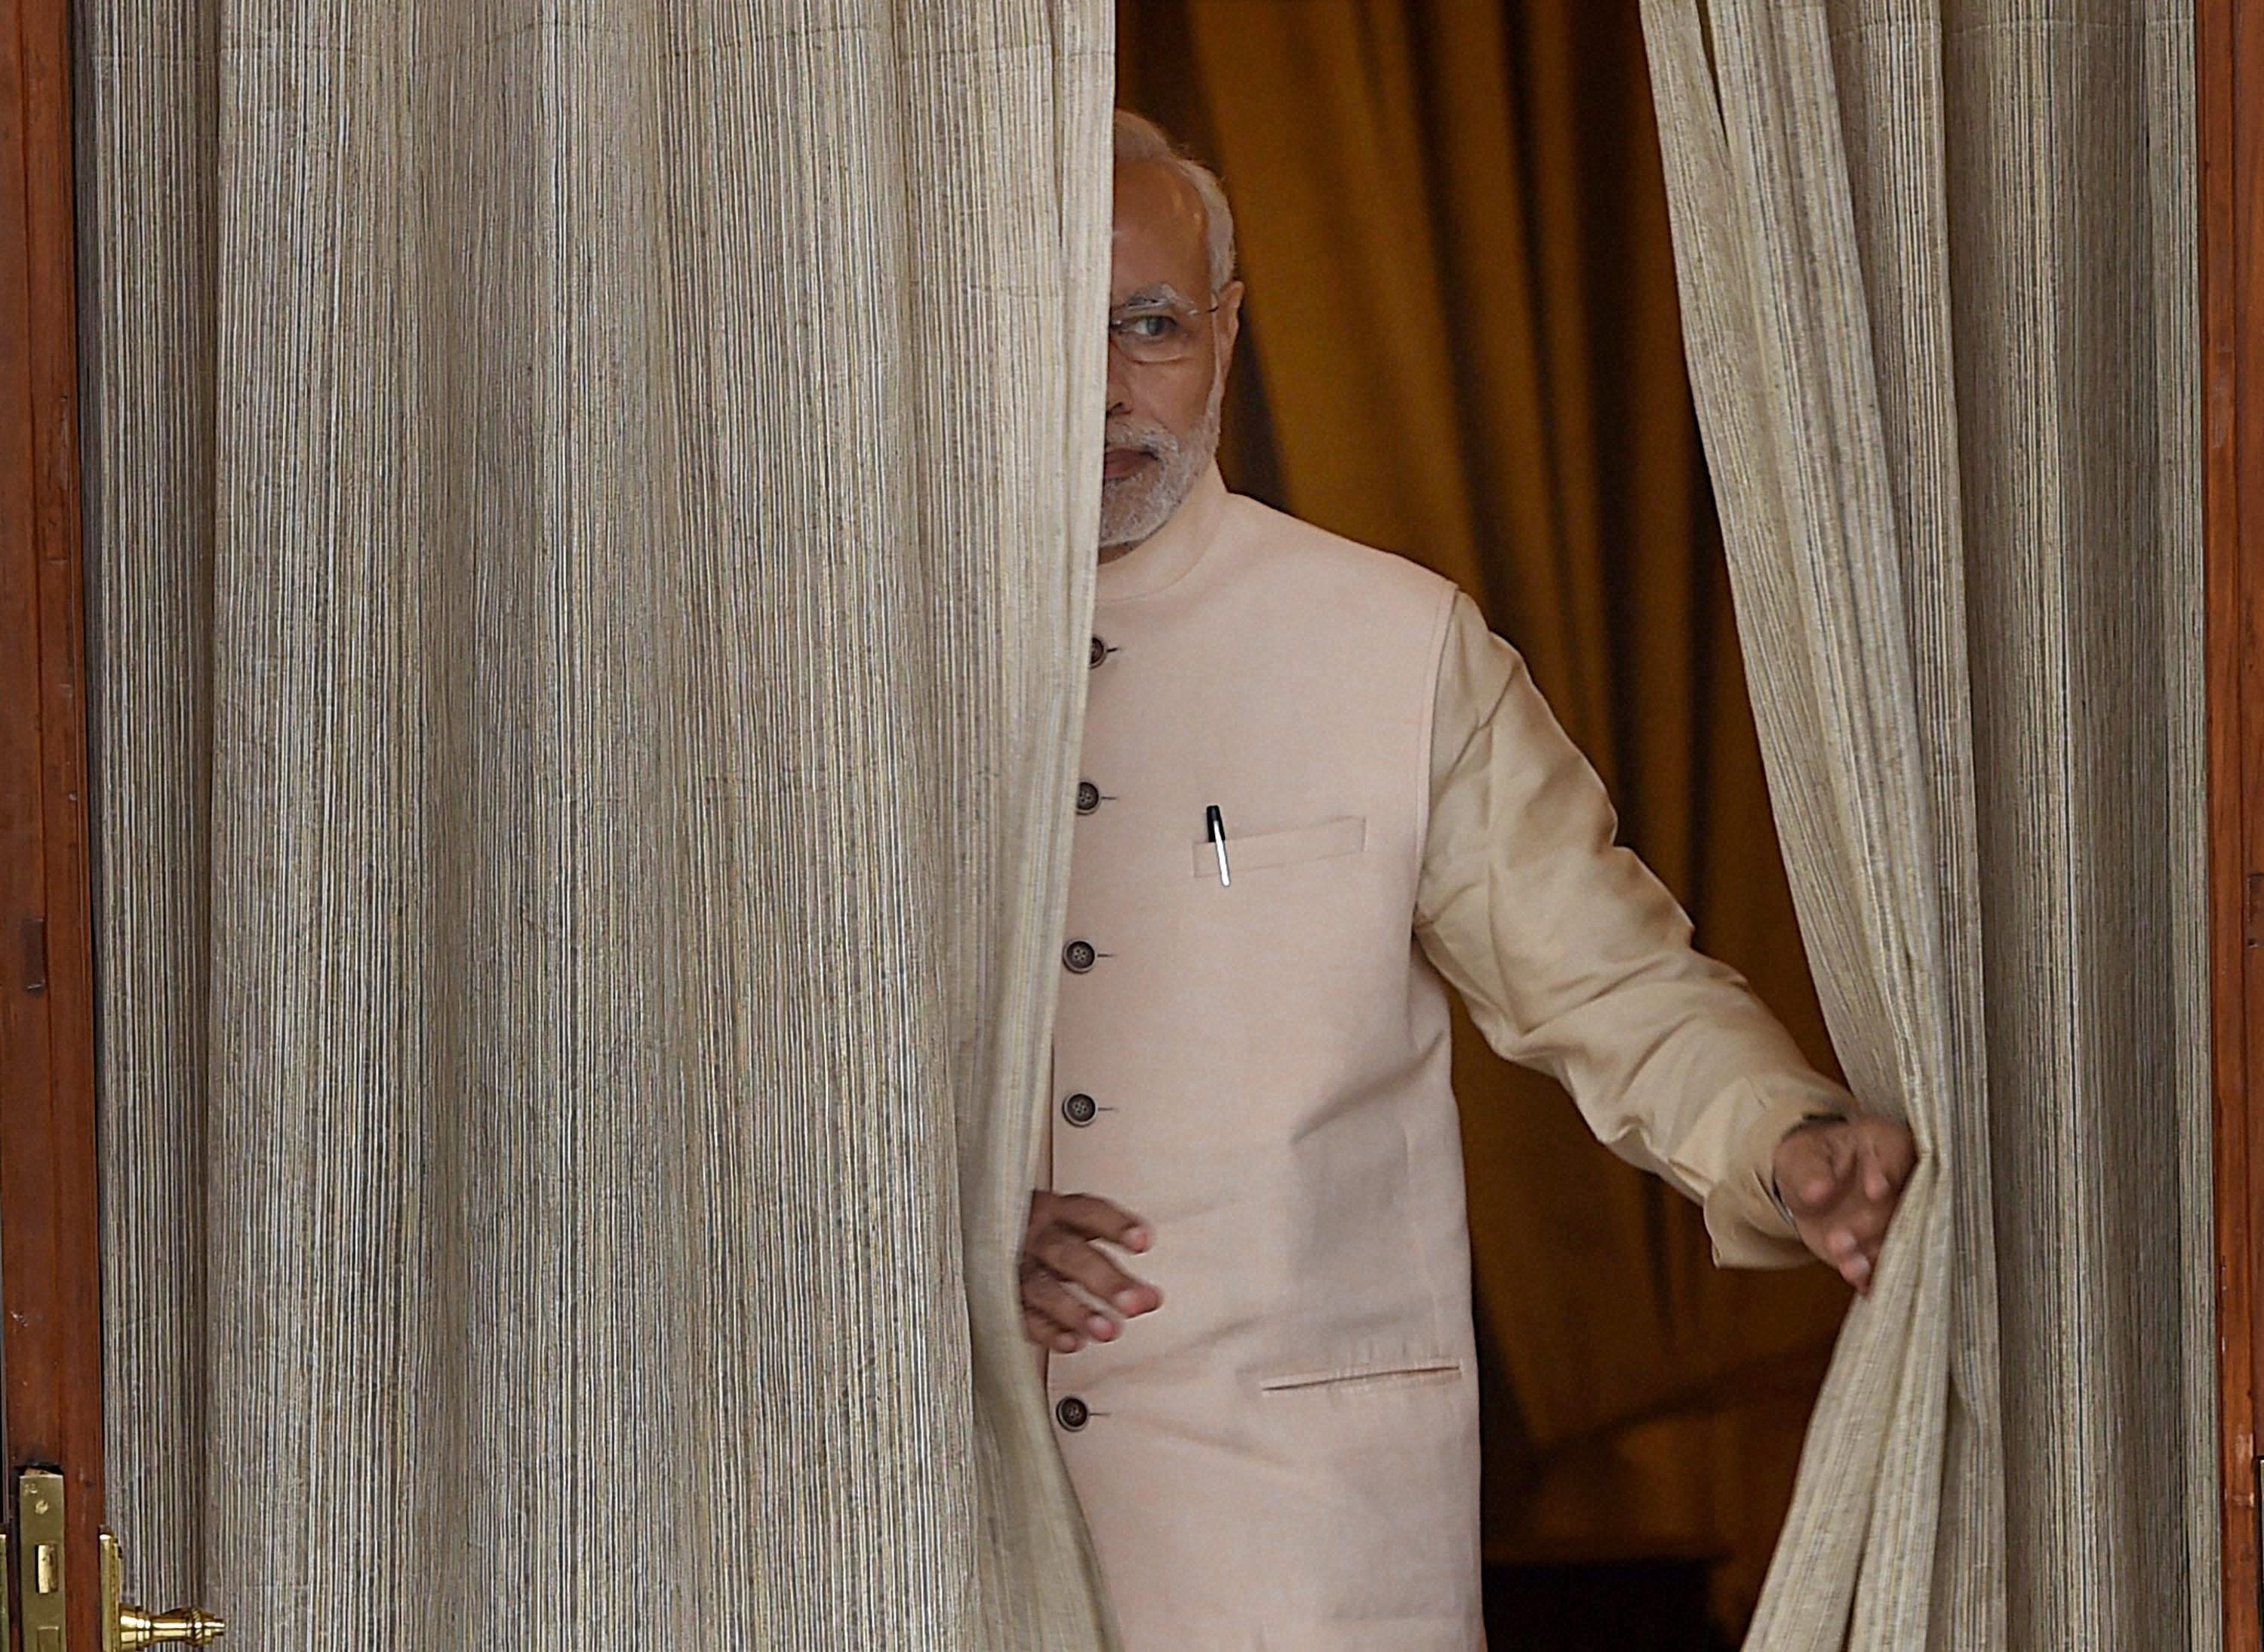 Prime Minister Narendra Modi at Hyderabad House. Credit: PTI photo by Shahbaz Khan